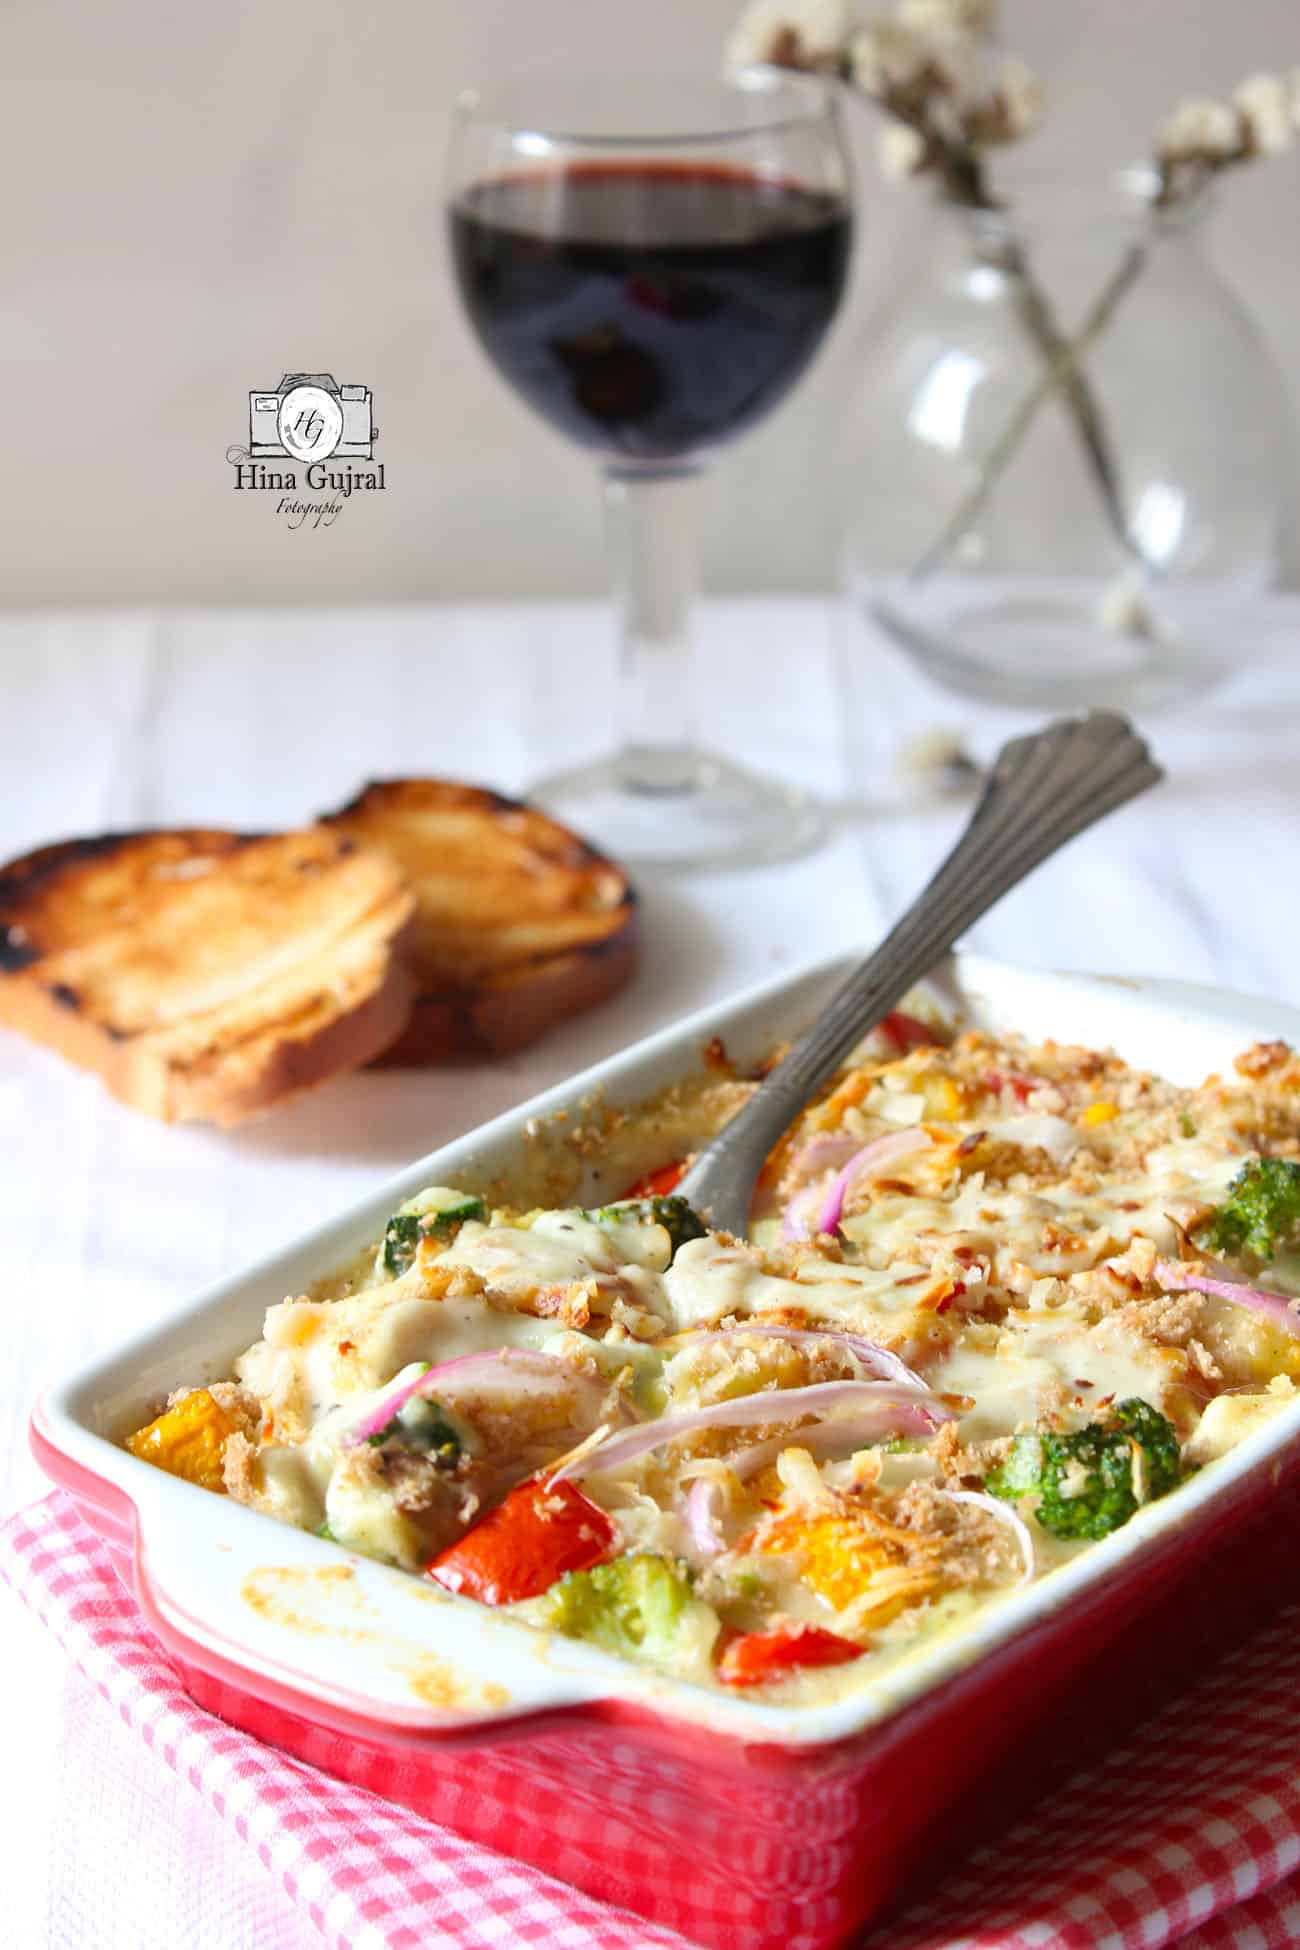 Baked vegetables in white sauce recipe fun food and frolic baked vegetable in white sauce recipe forumfinder Image collections